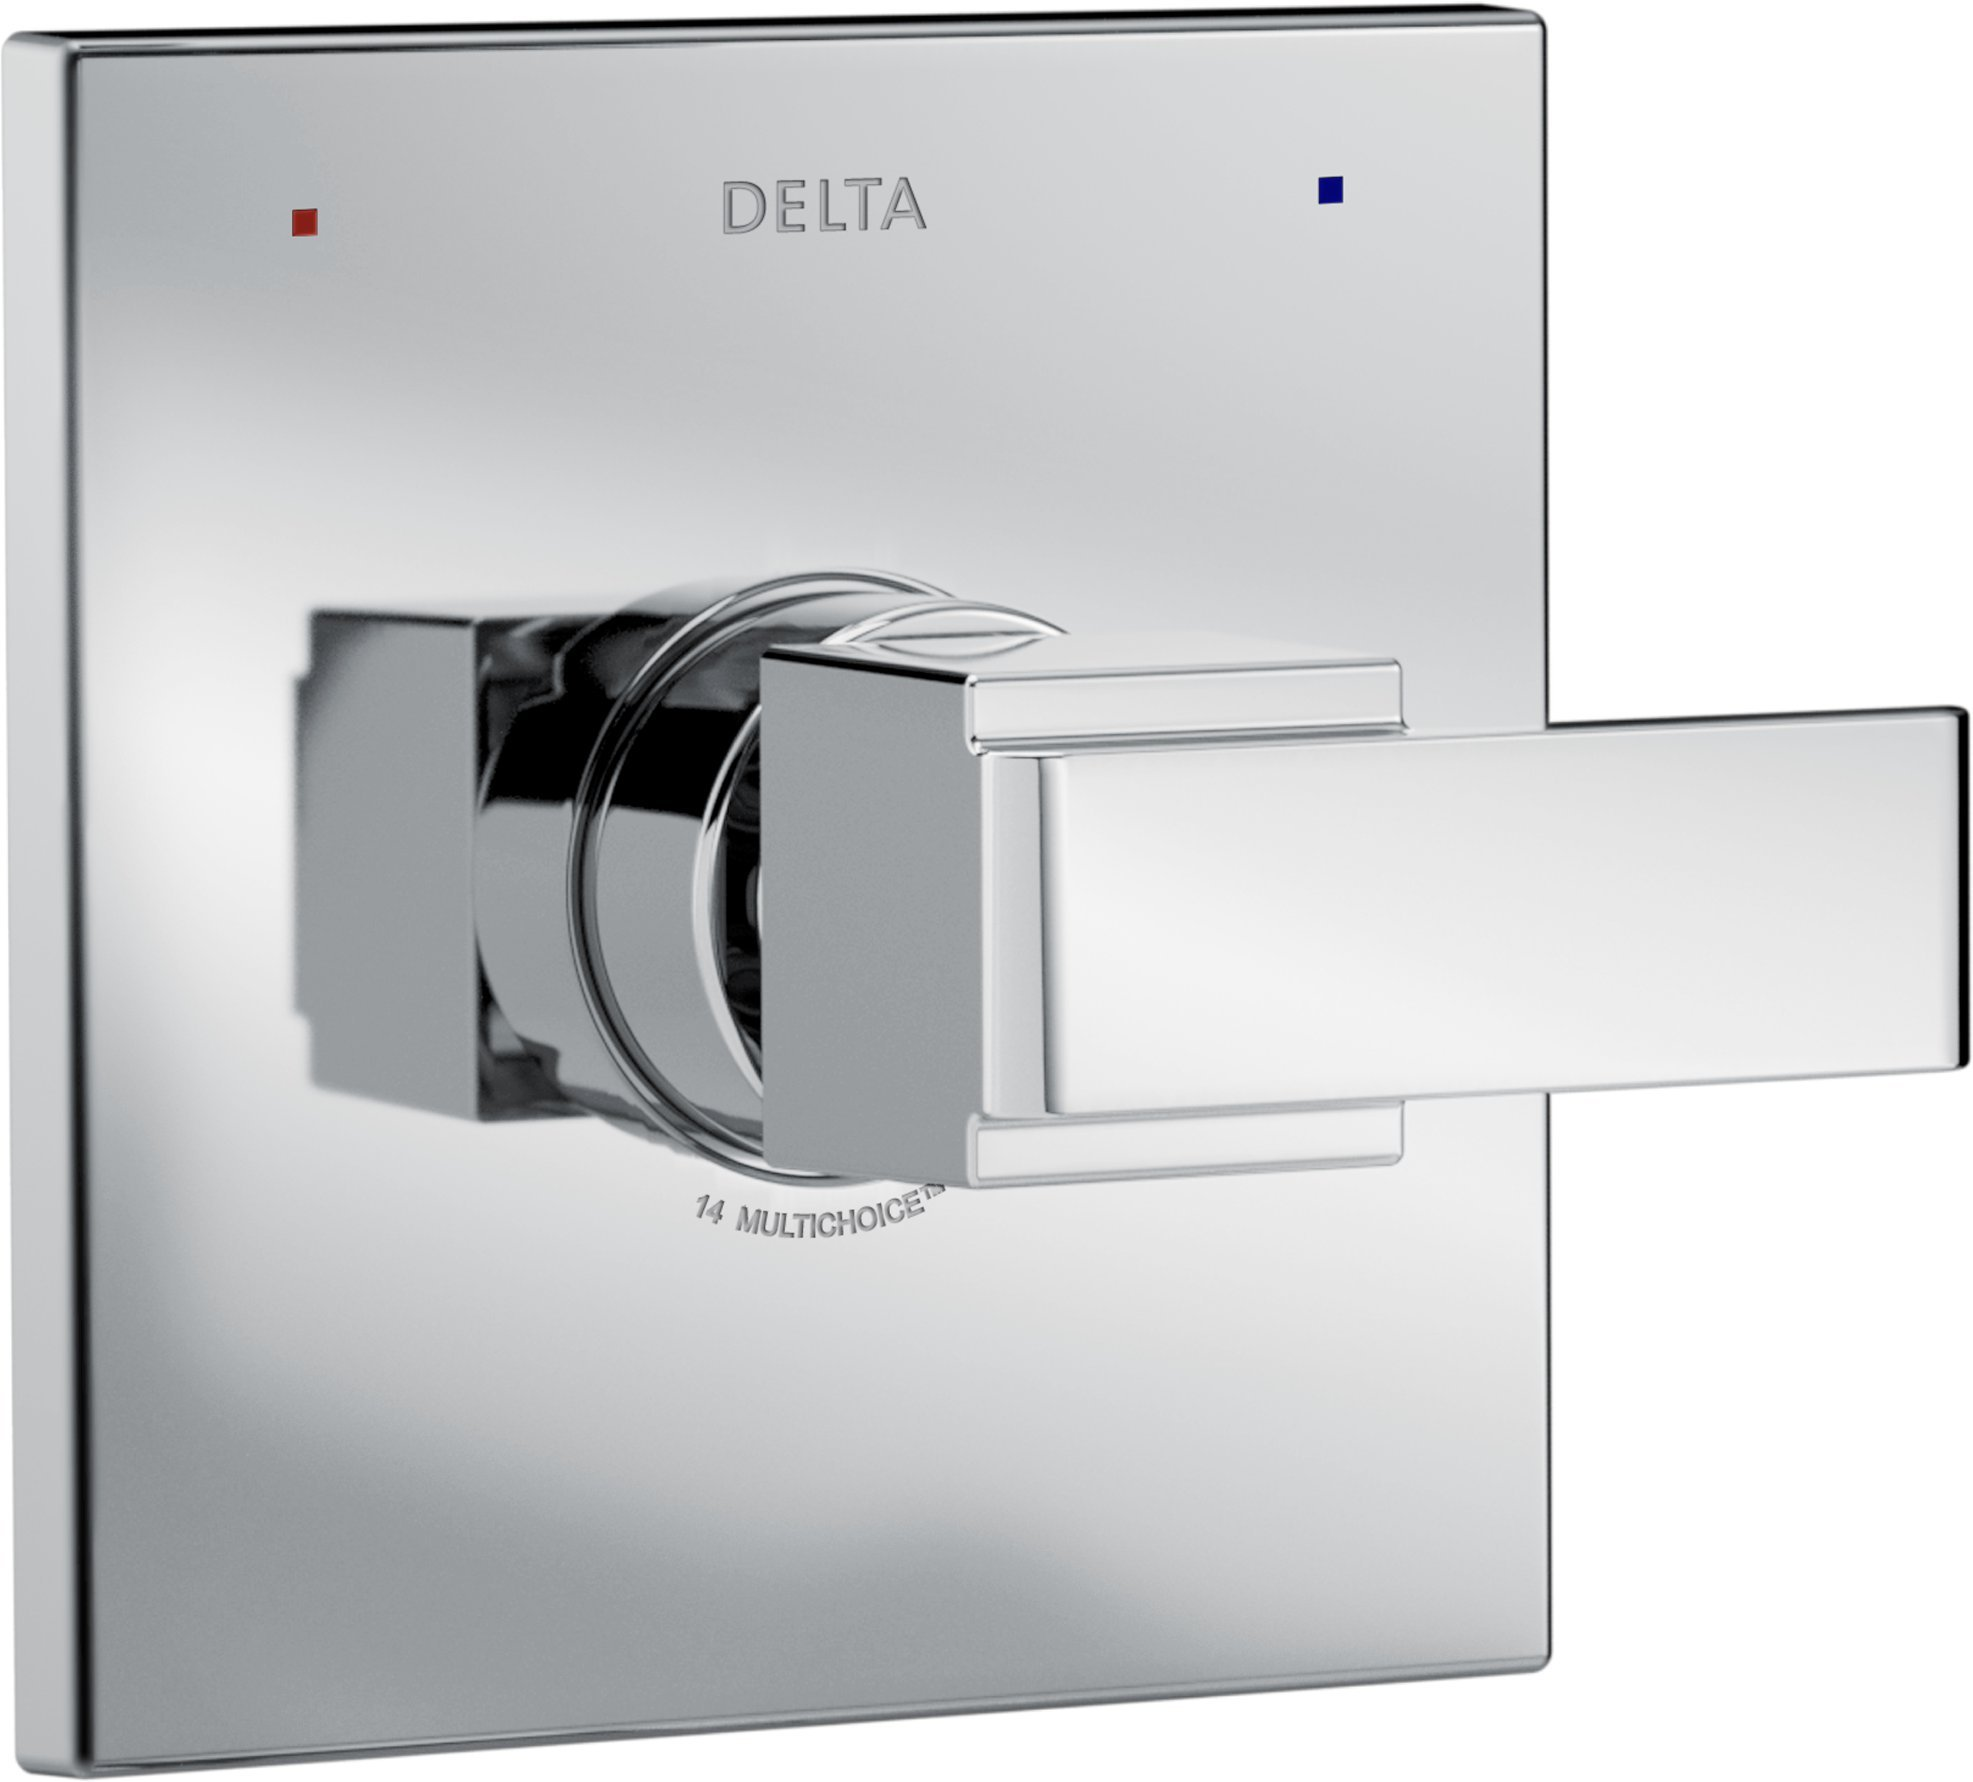 Delta Faucet Ara 14 Series Single-Function Shower Handle Valve Trim Kit, Chrome T14067 (Valve Not Included) by DELTA FAUCET